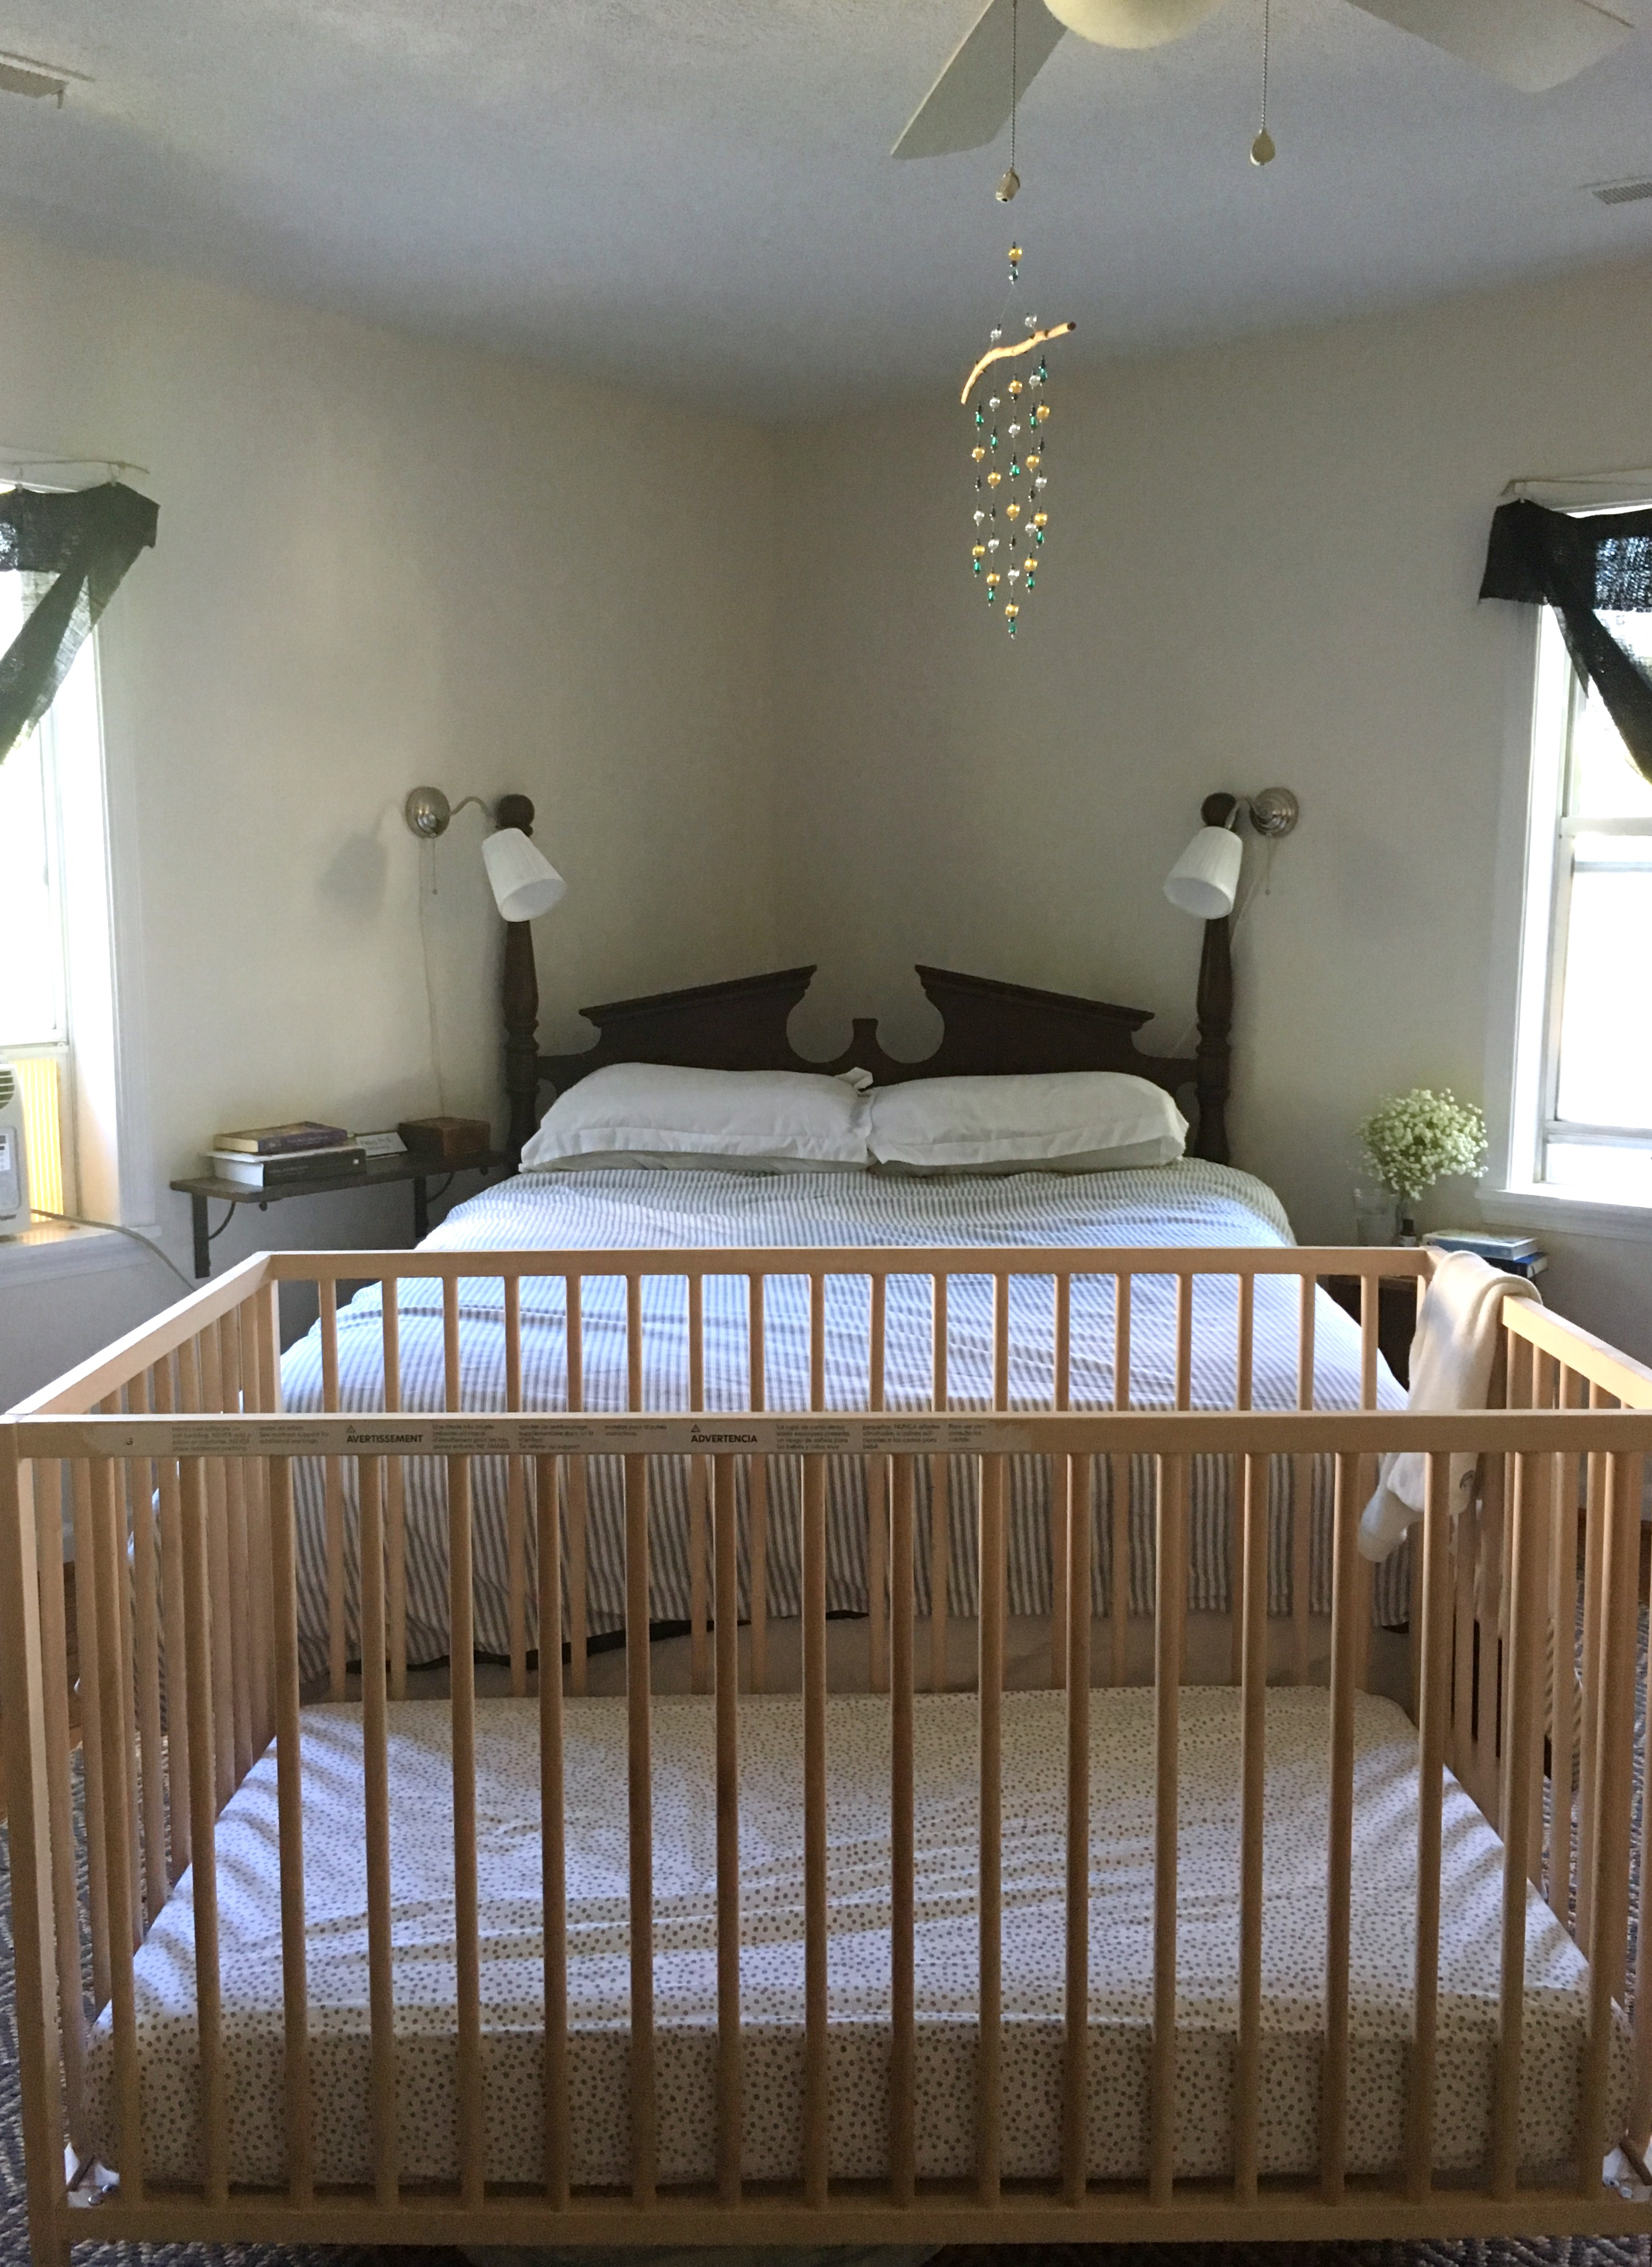 KatharineSchellman.com - tiny apartment sharing a bedroom with a baby